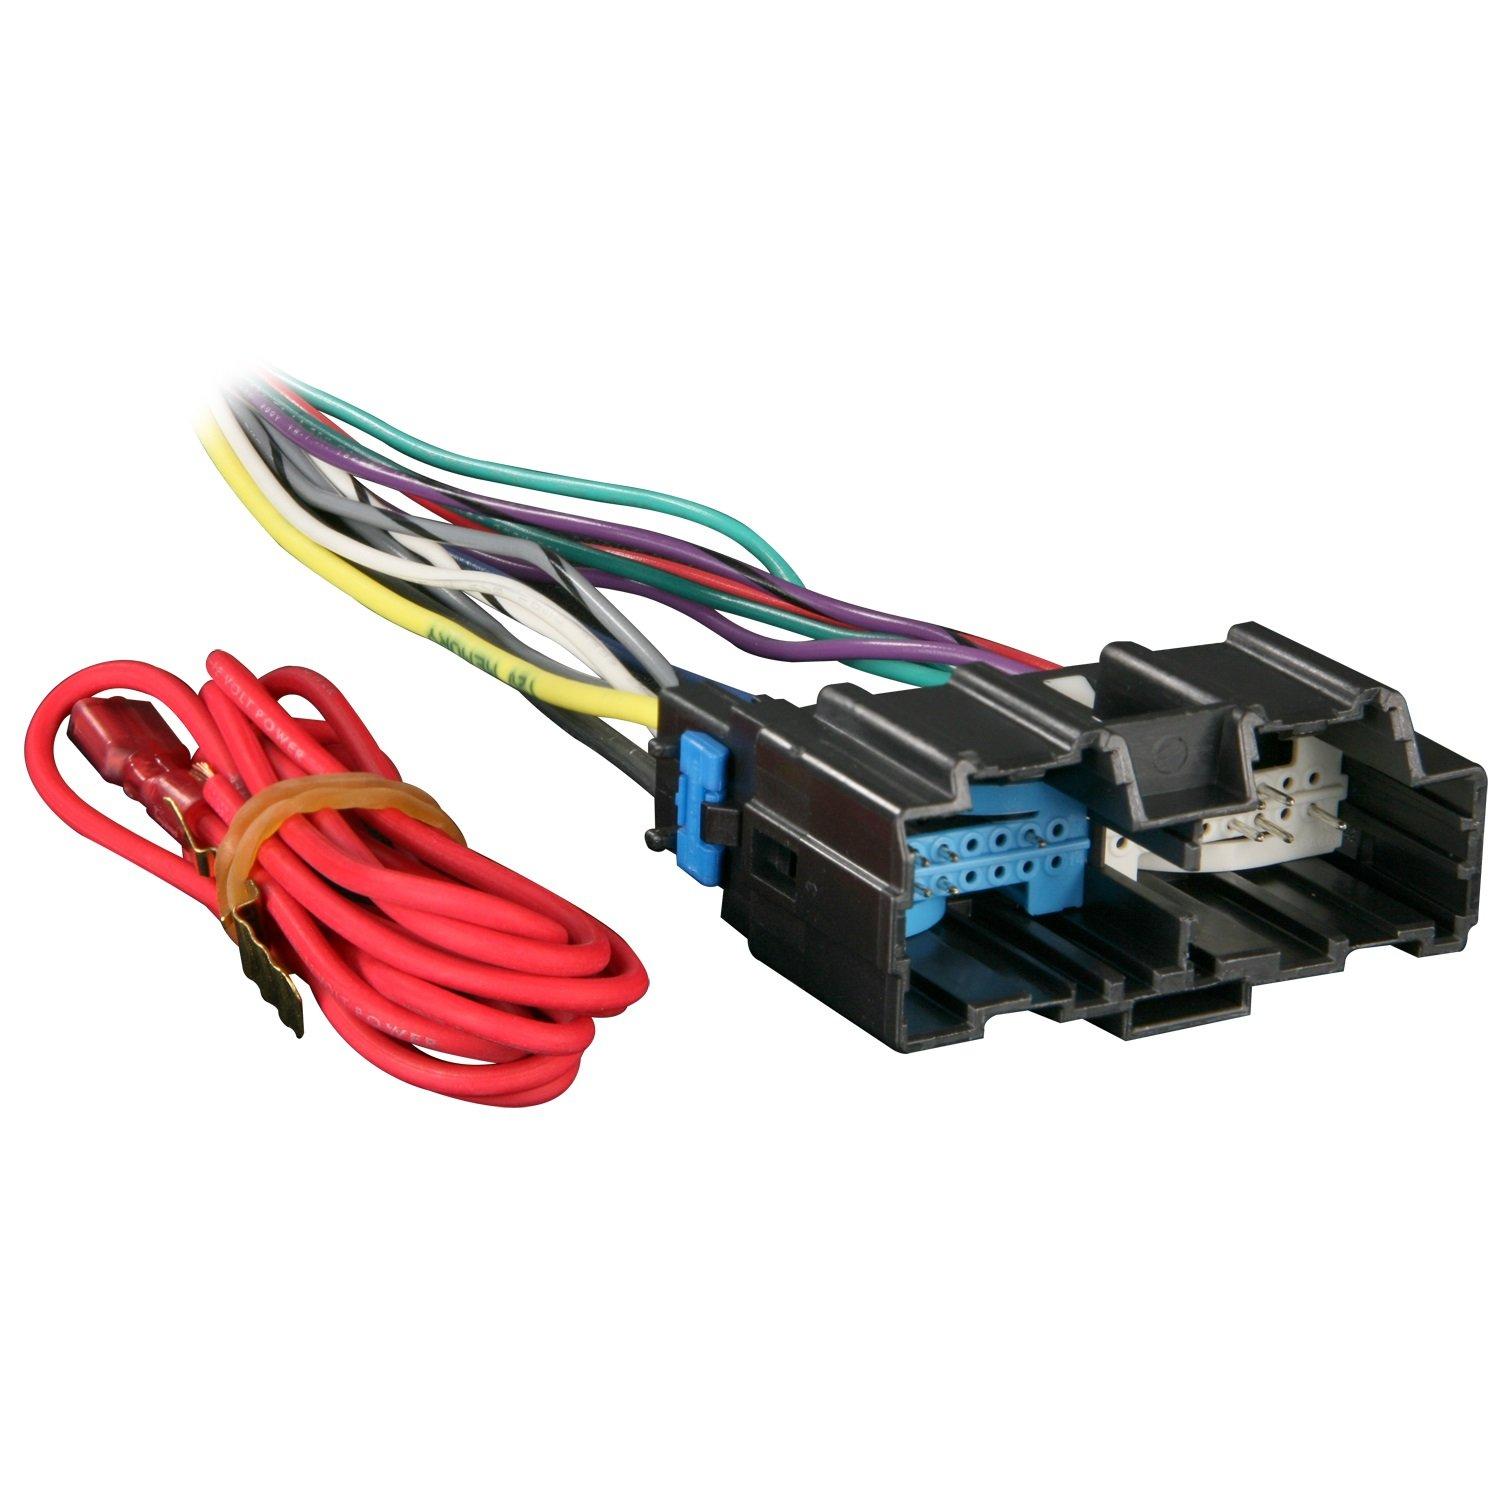 71ZzH dyg7L._SL1500_ amazon com metra 70 2105 radio wiring harness for impala monte  at eliteediting.co